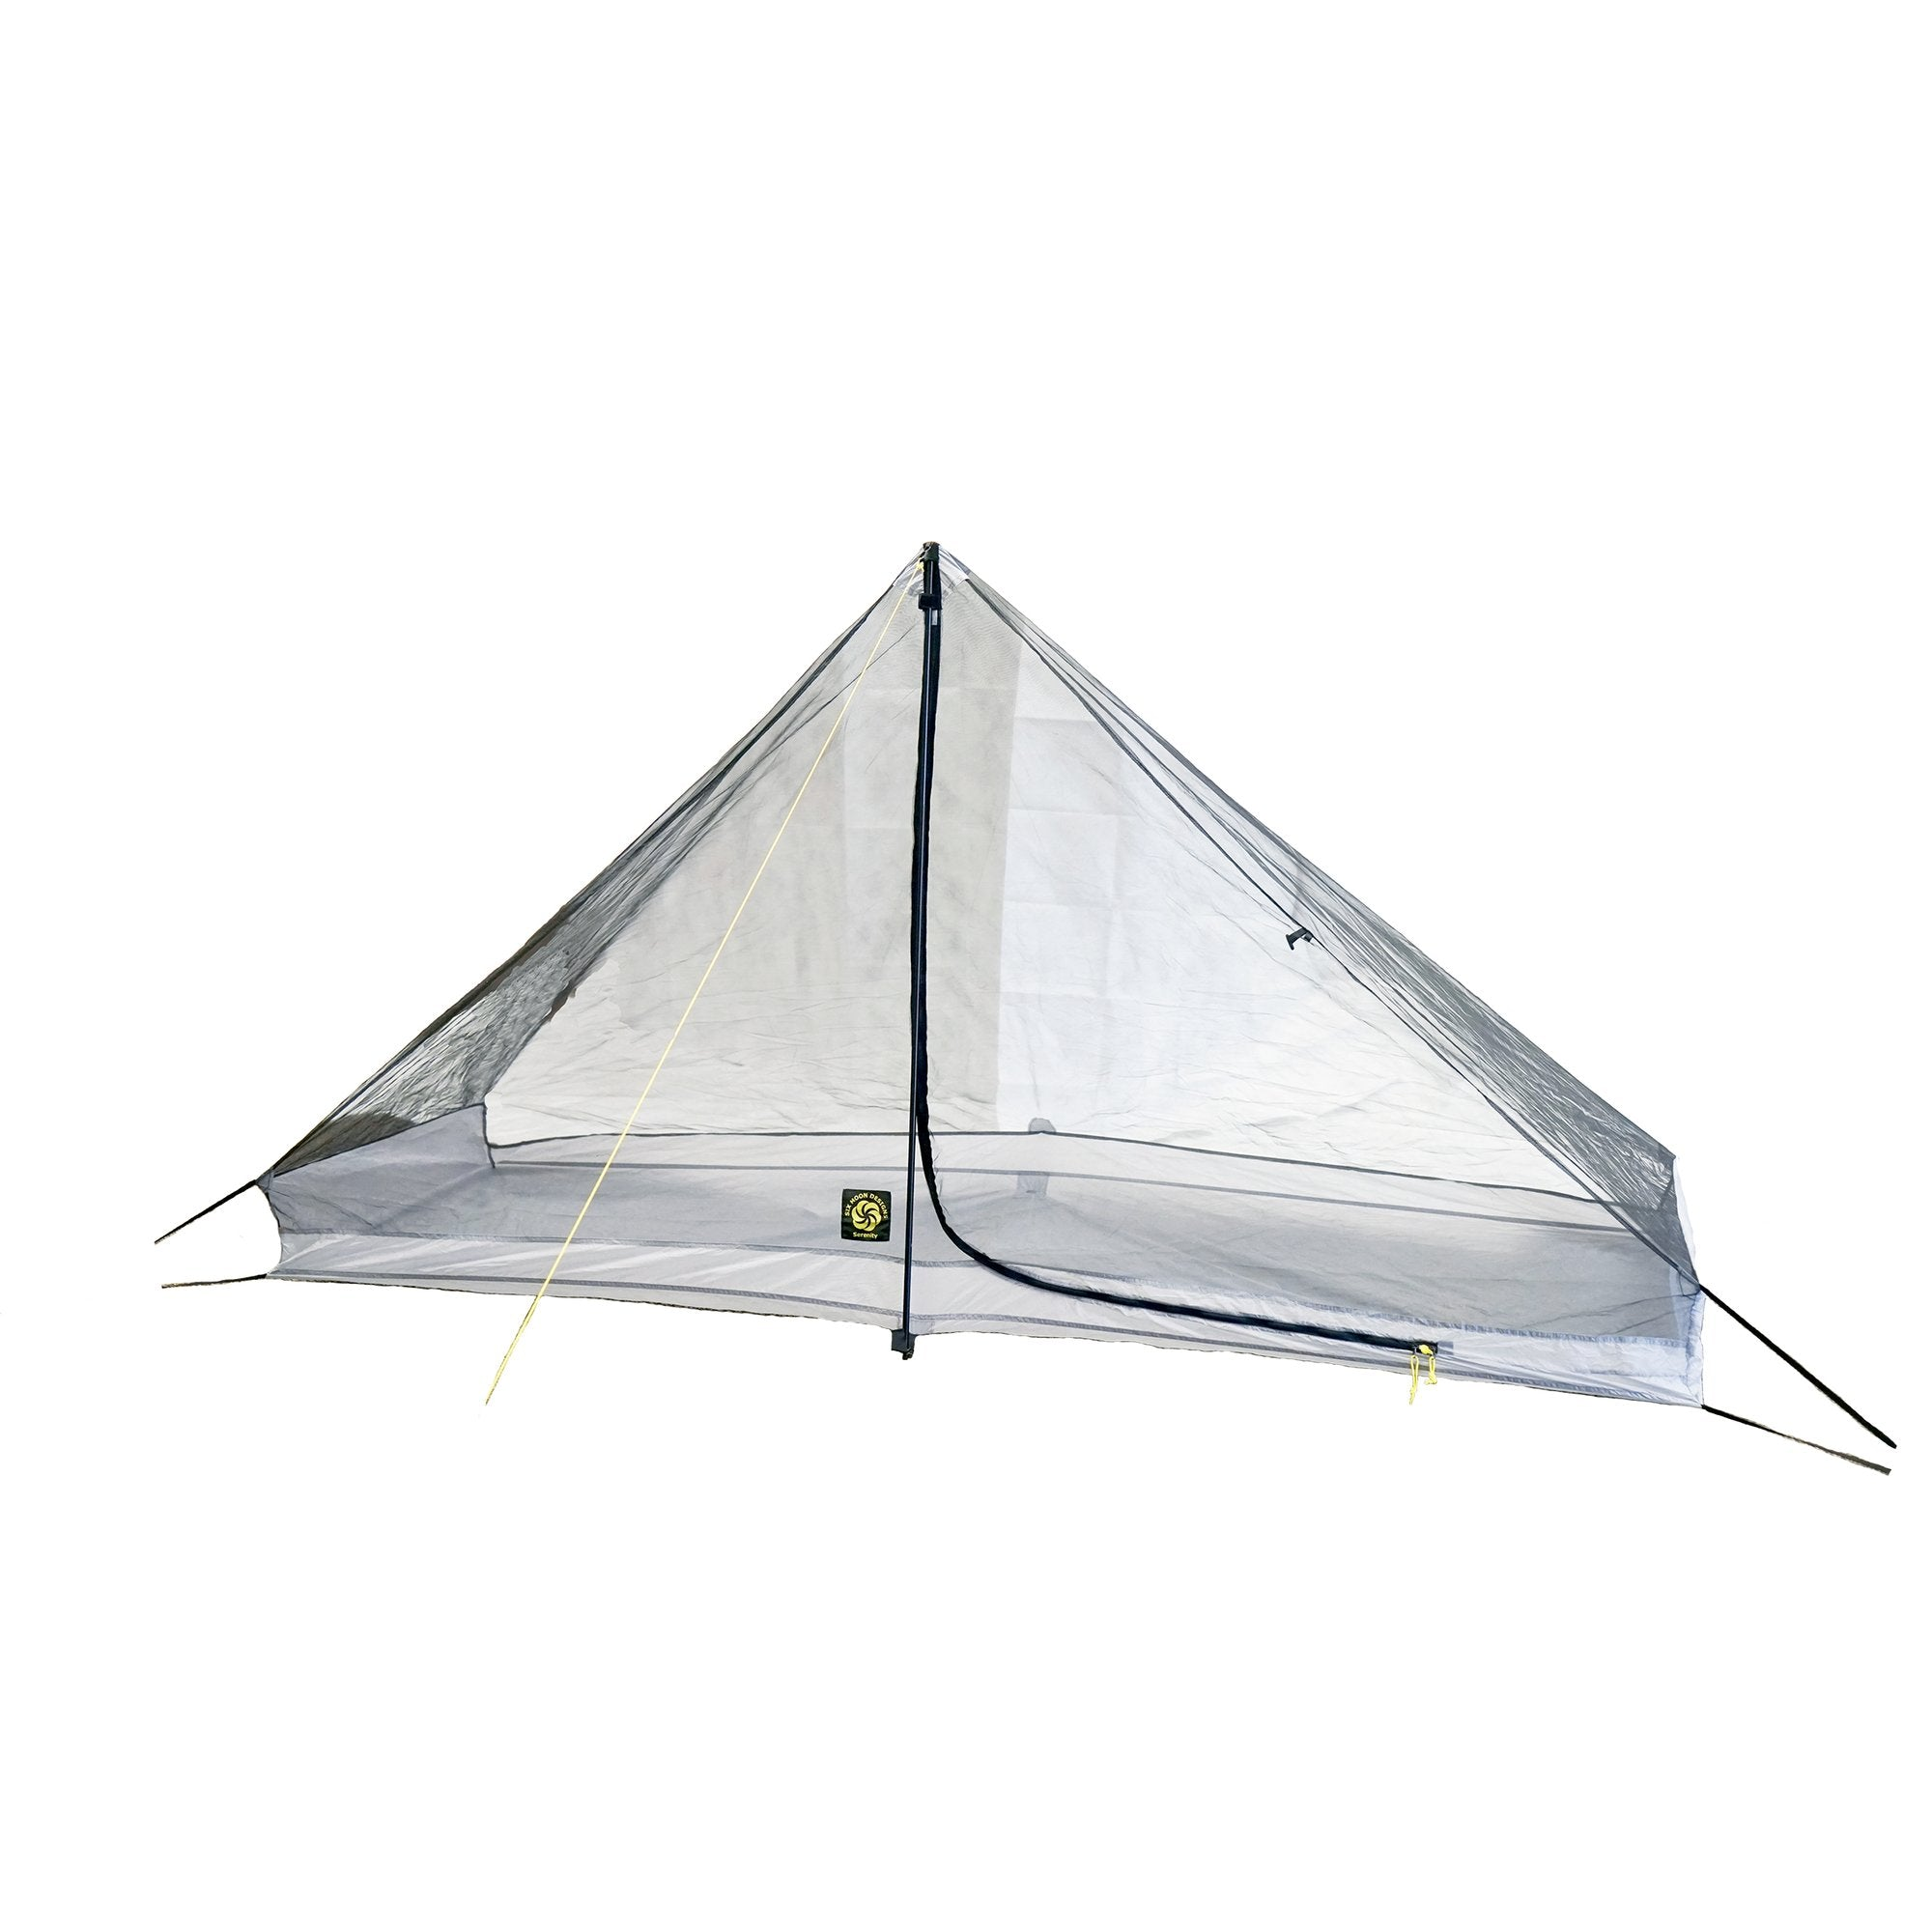 Six Moon Designs Serenity Net Tent